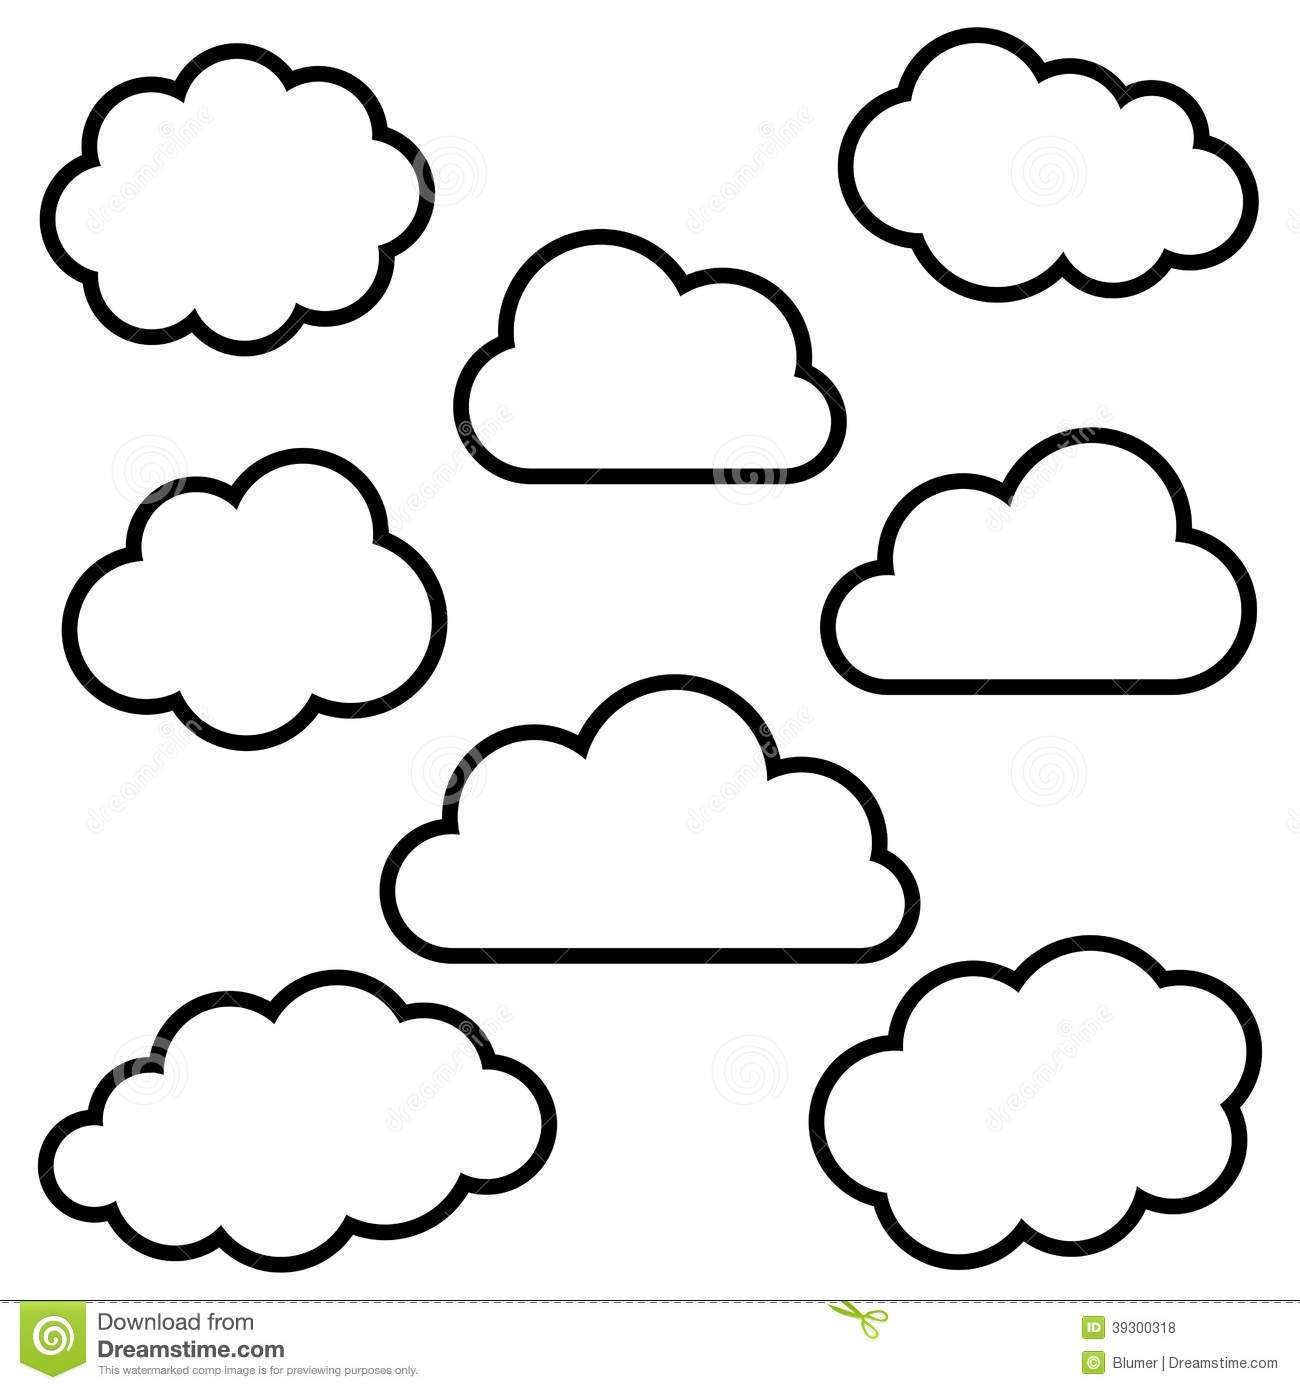 Sky black and white clipart 3 » Clipart Portal.